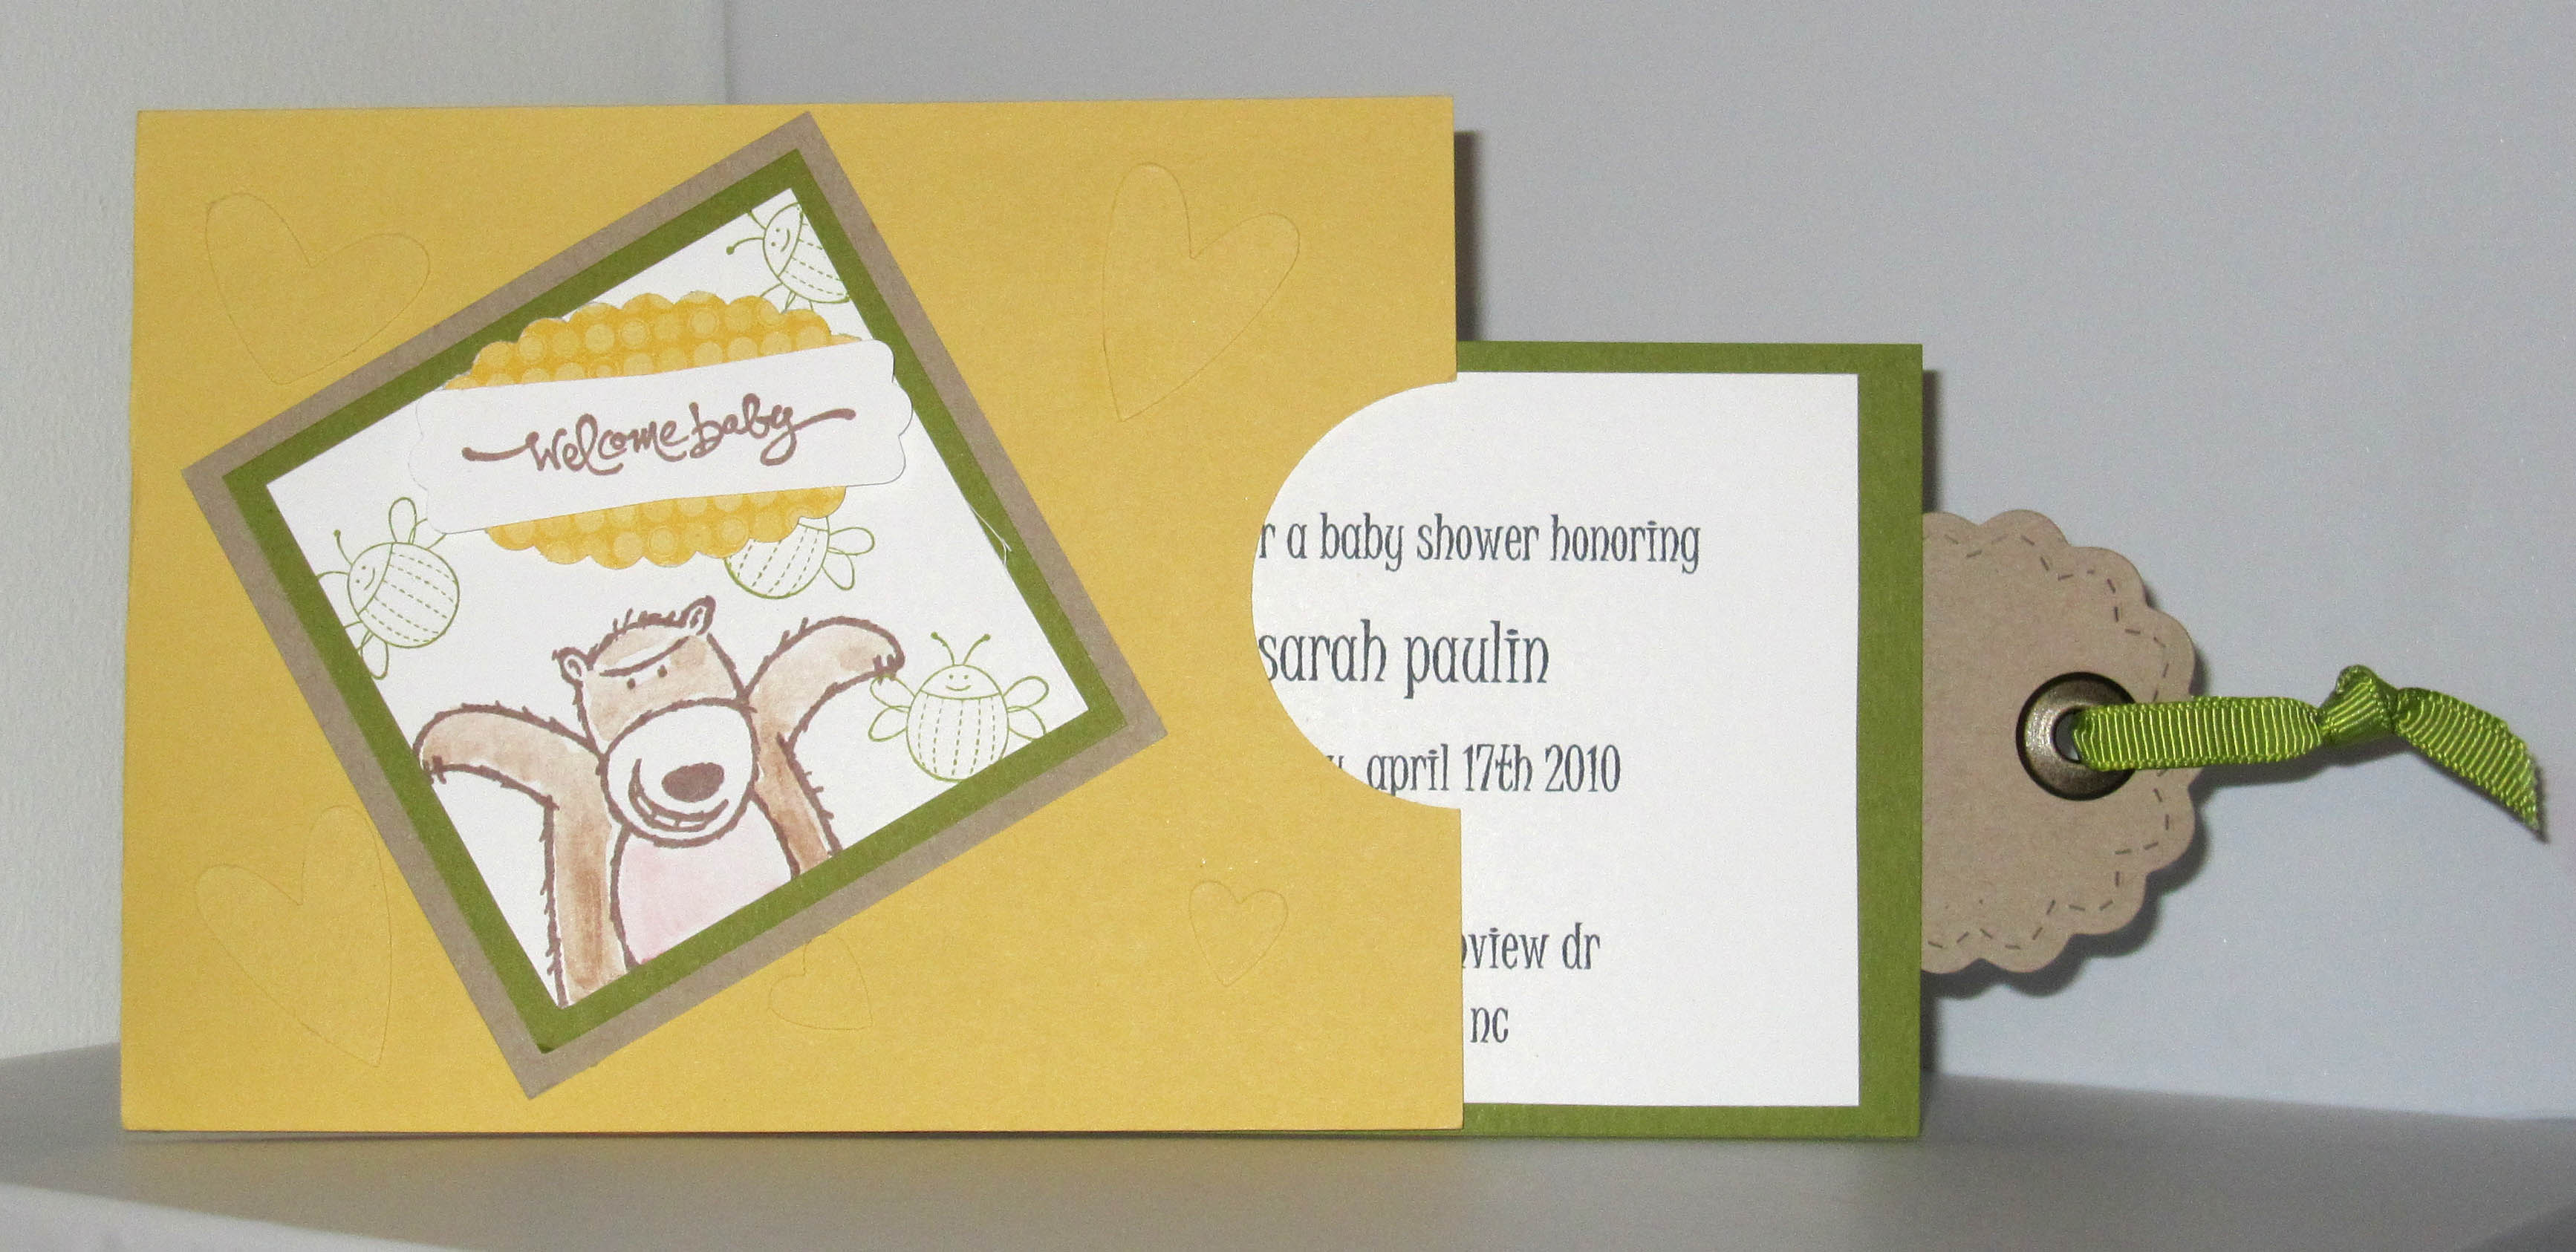 Stampin up demonstrator brandy cox features a baby invitation using now filmwisefo